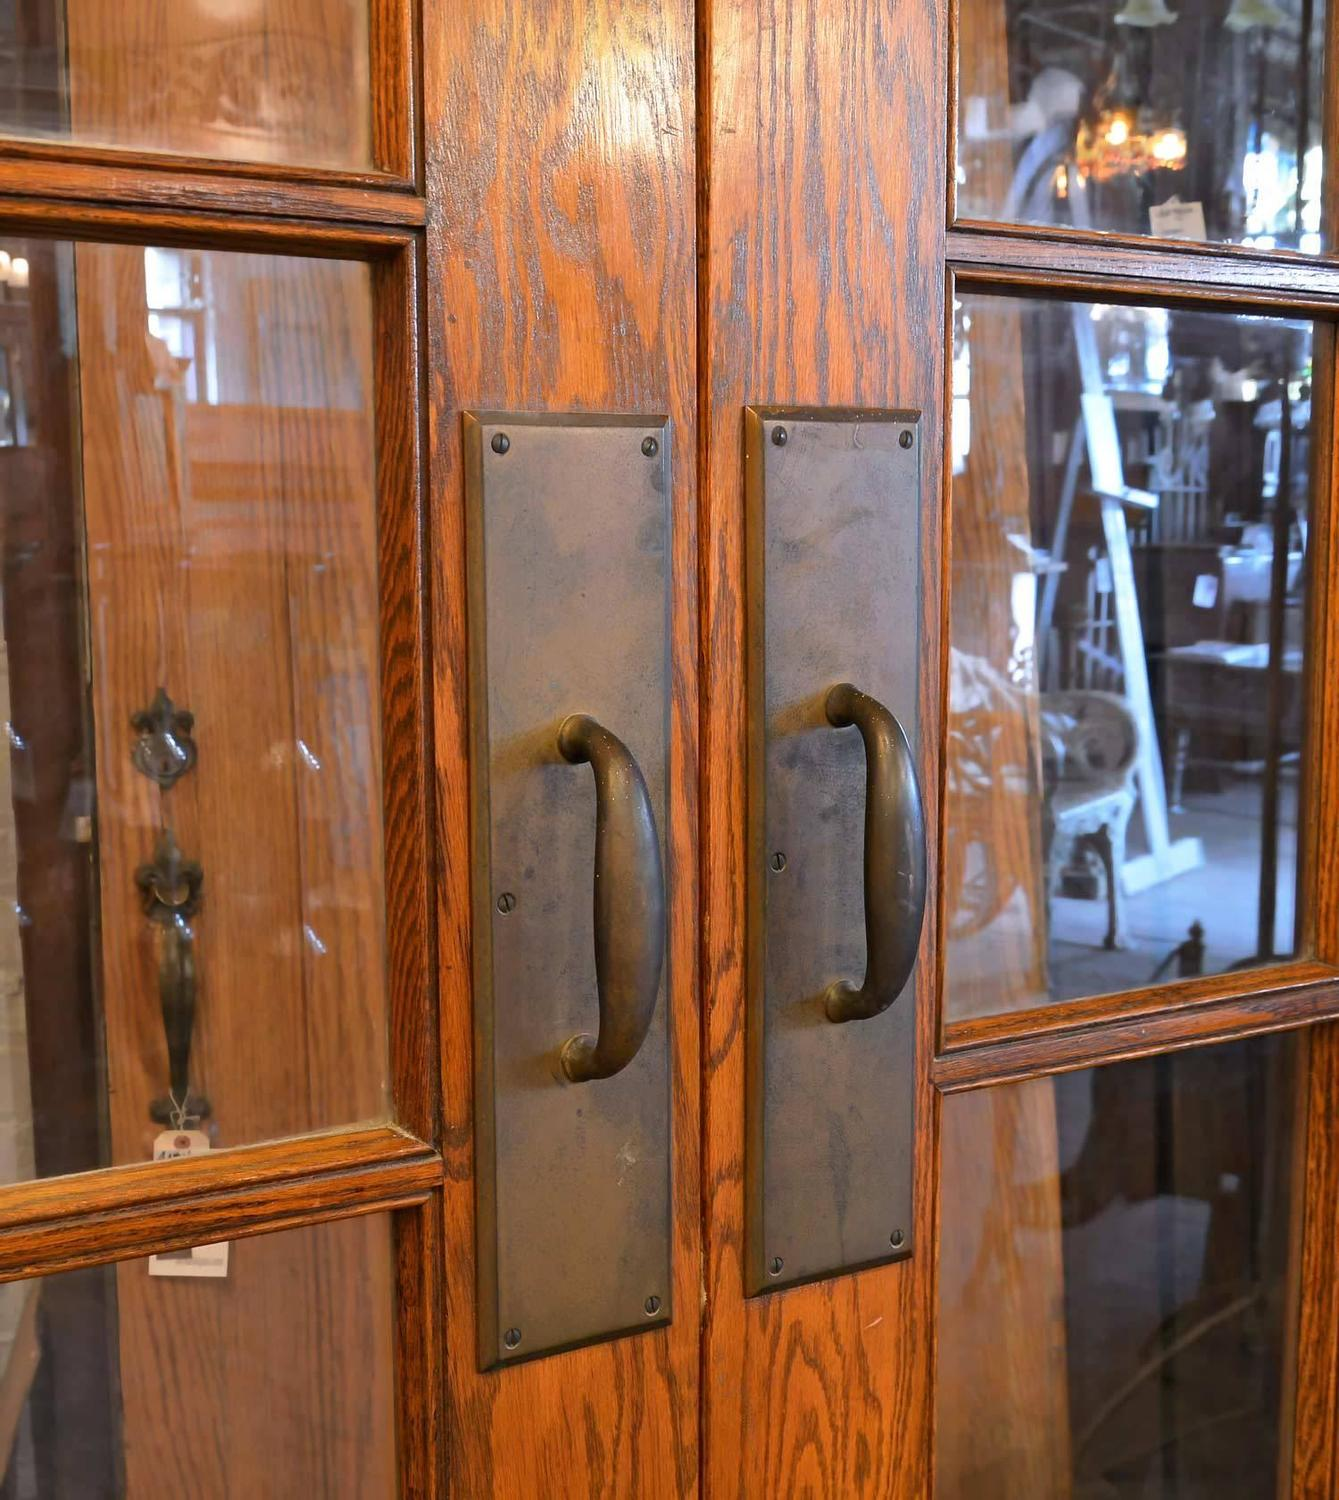 1500 #B15110 Beautiful Oak Double Door Set With Transom And Sidelights At 1stdibs picture/photo Entry Doors With Sidelights And Transom 40591339